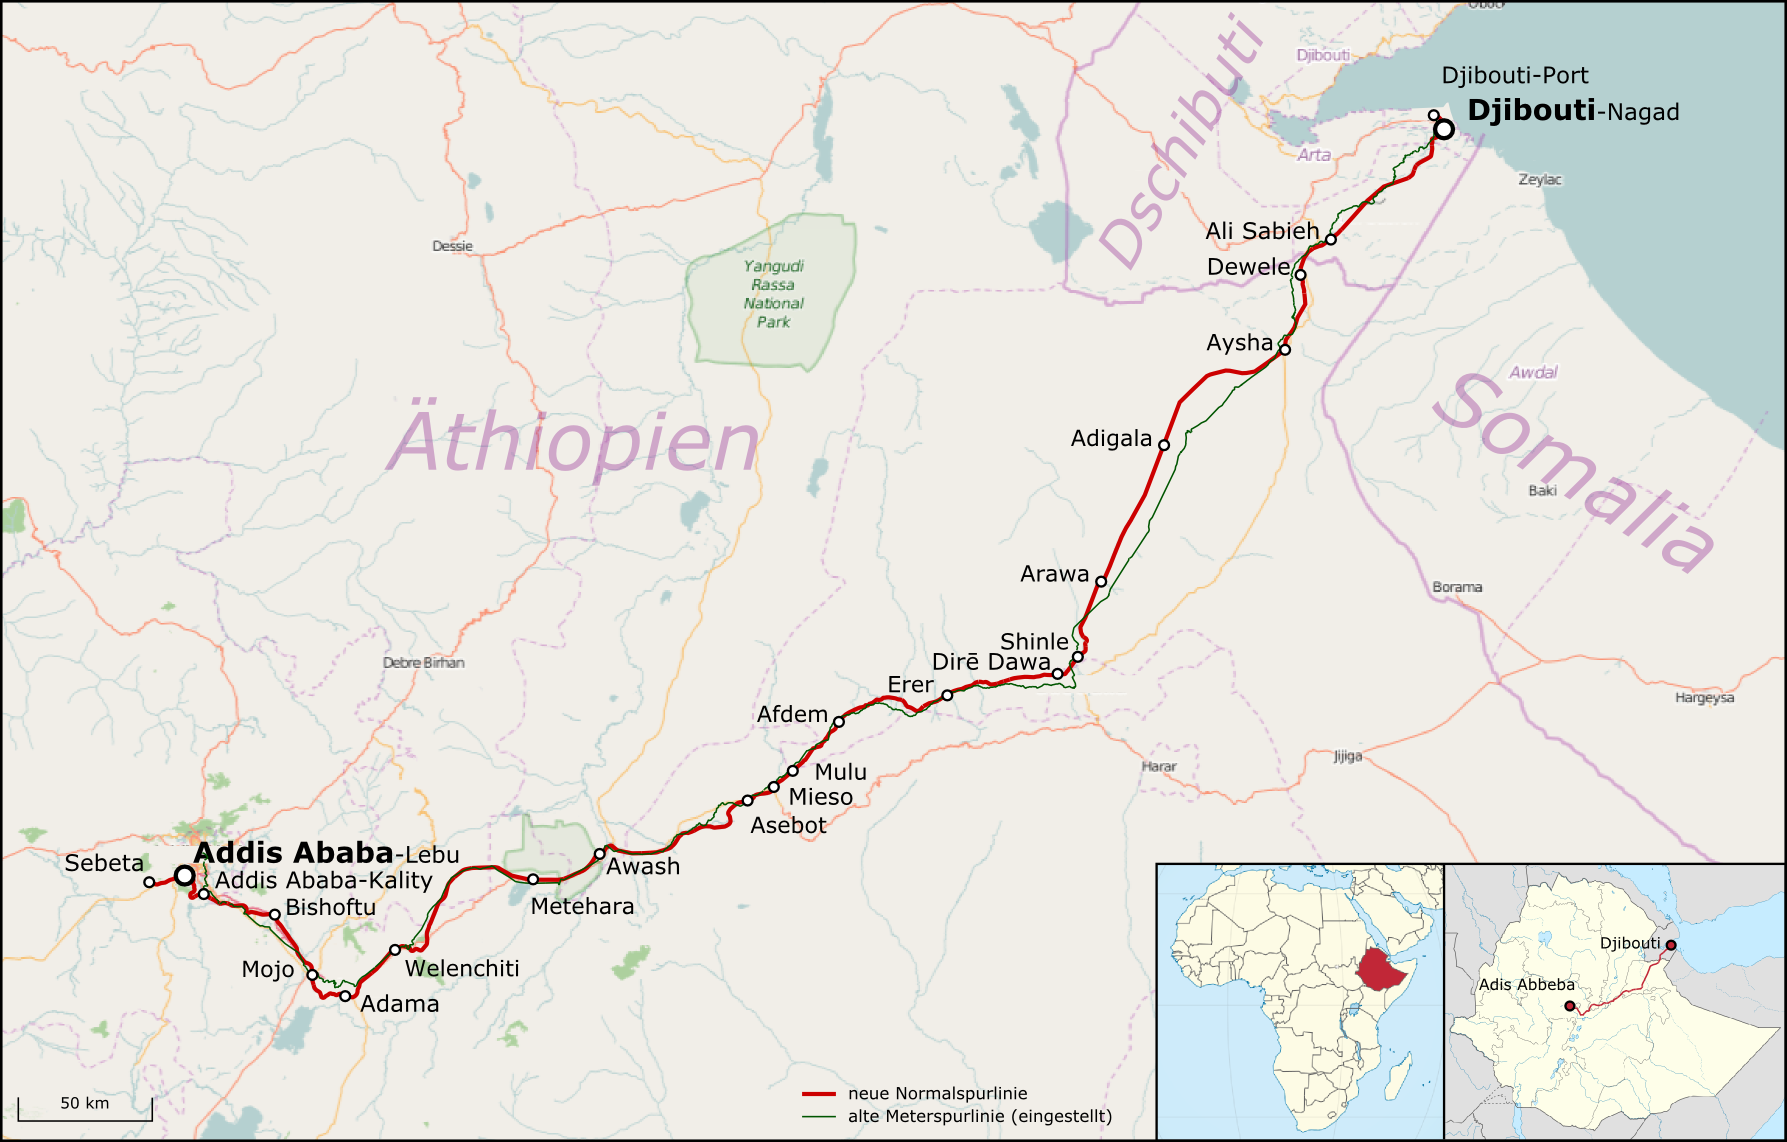 The Ethiopia-Djibouti railway shown in red. Photo: Map data, OpenStreetMap and CC-BY-SA.